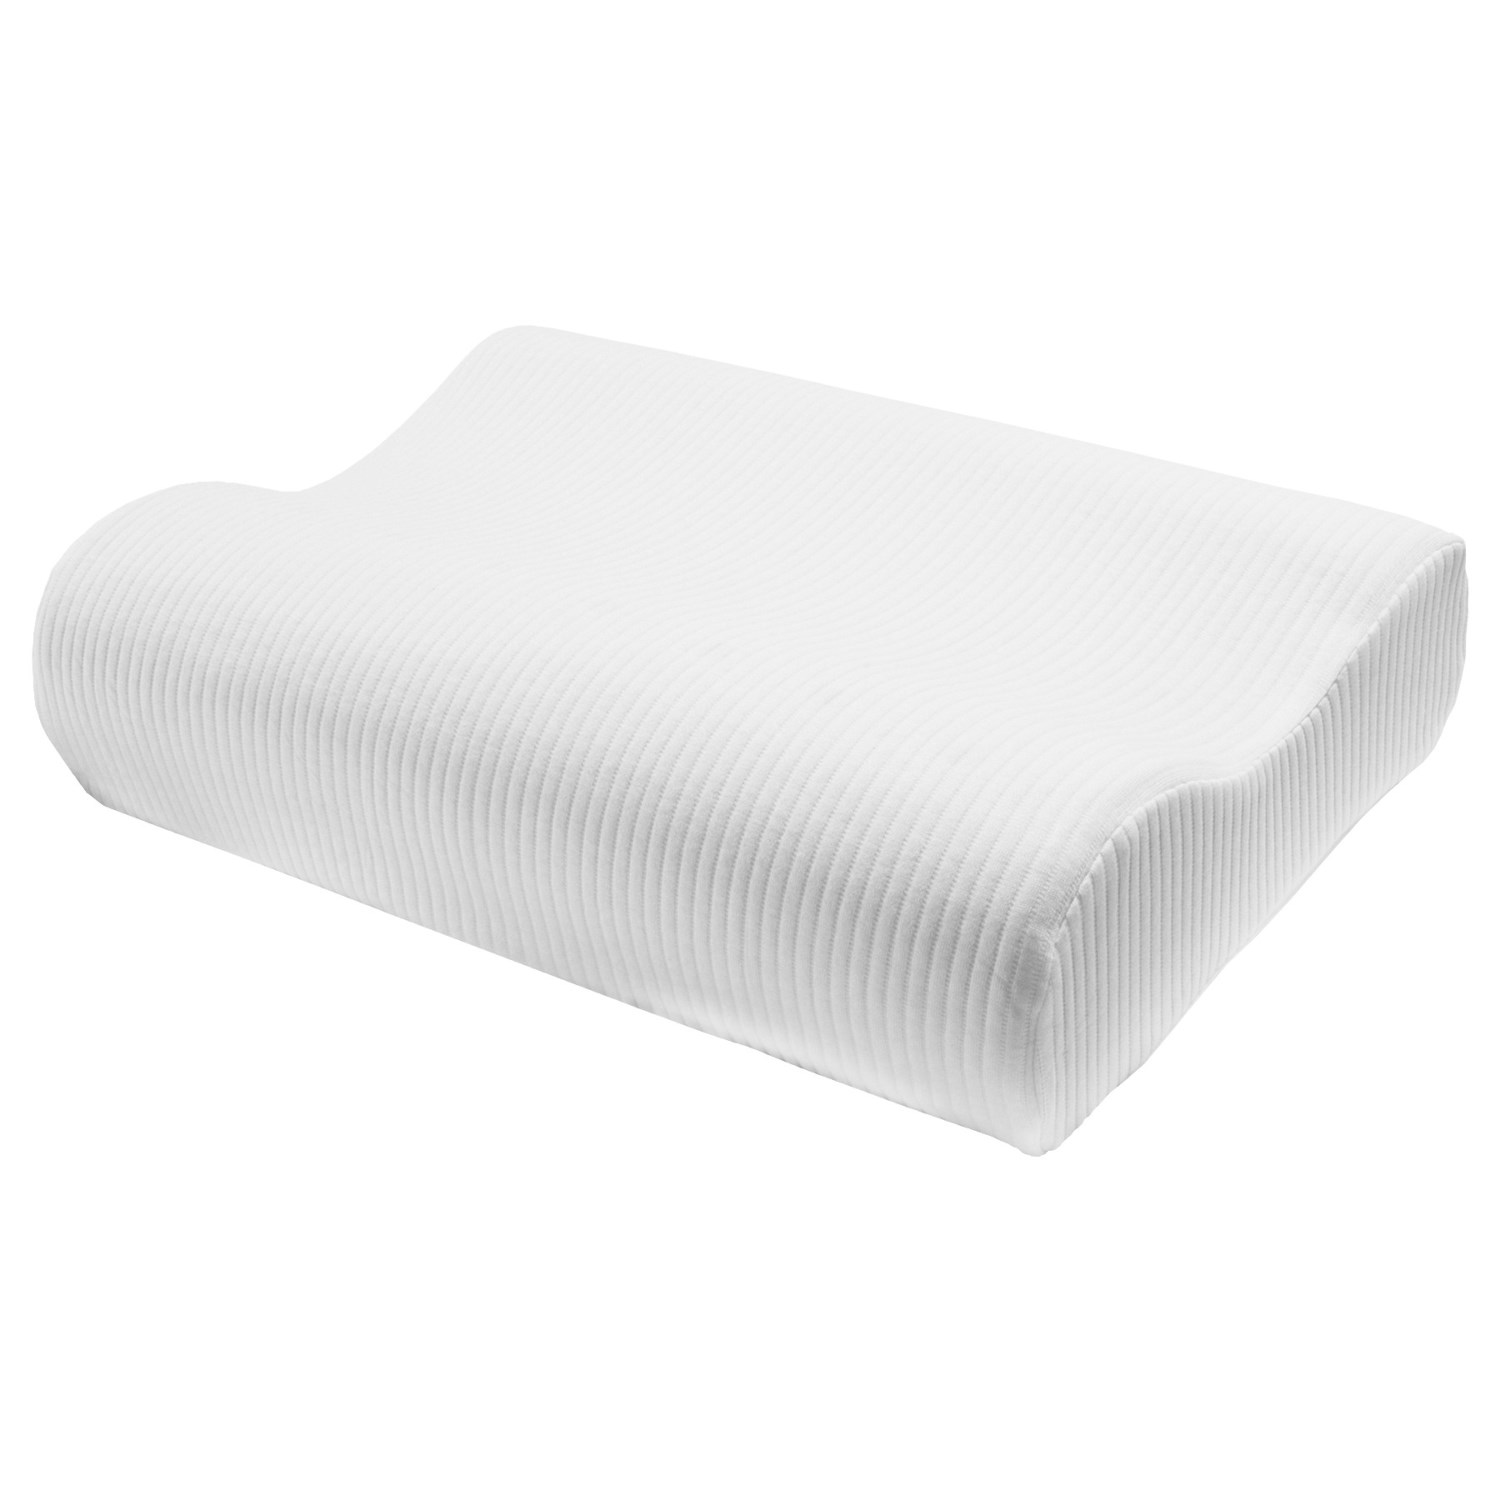 softtex classic contour pillow standard memory foam in white